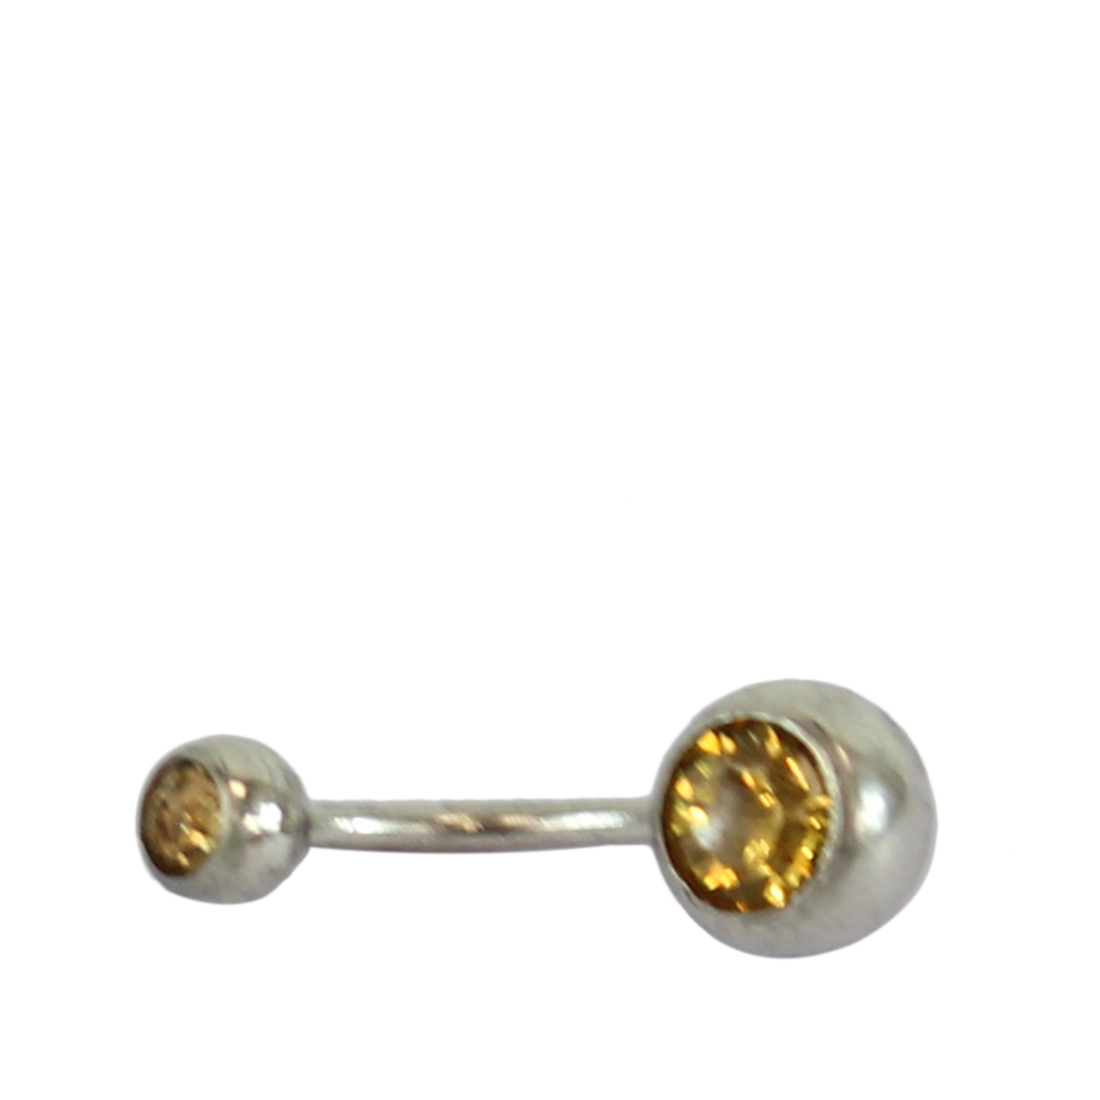 Belly button ring with diamond